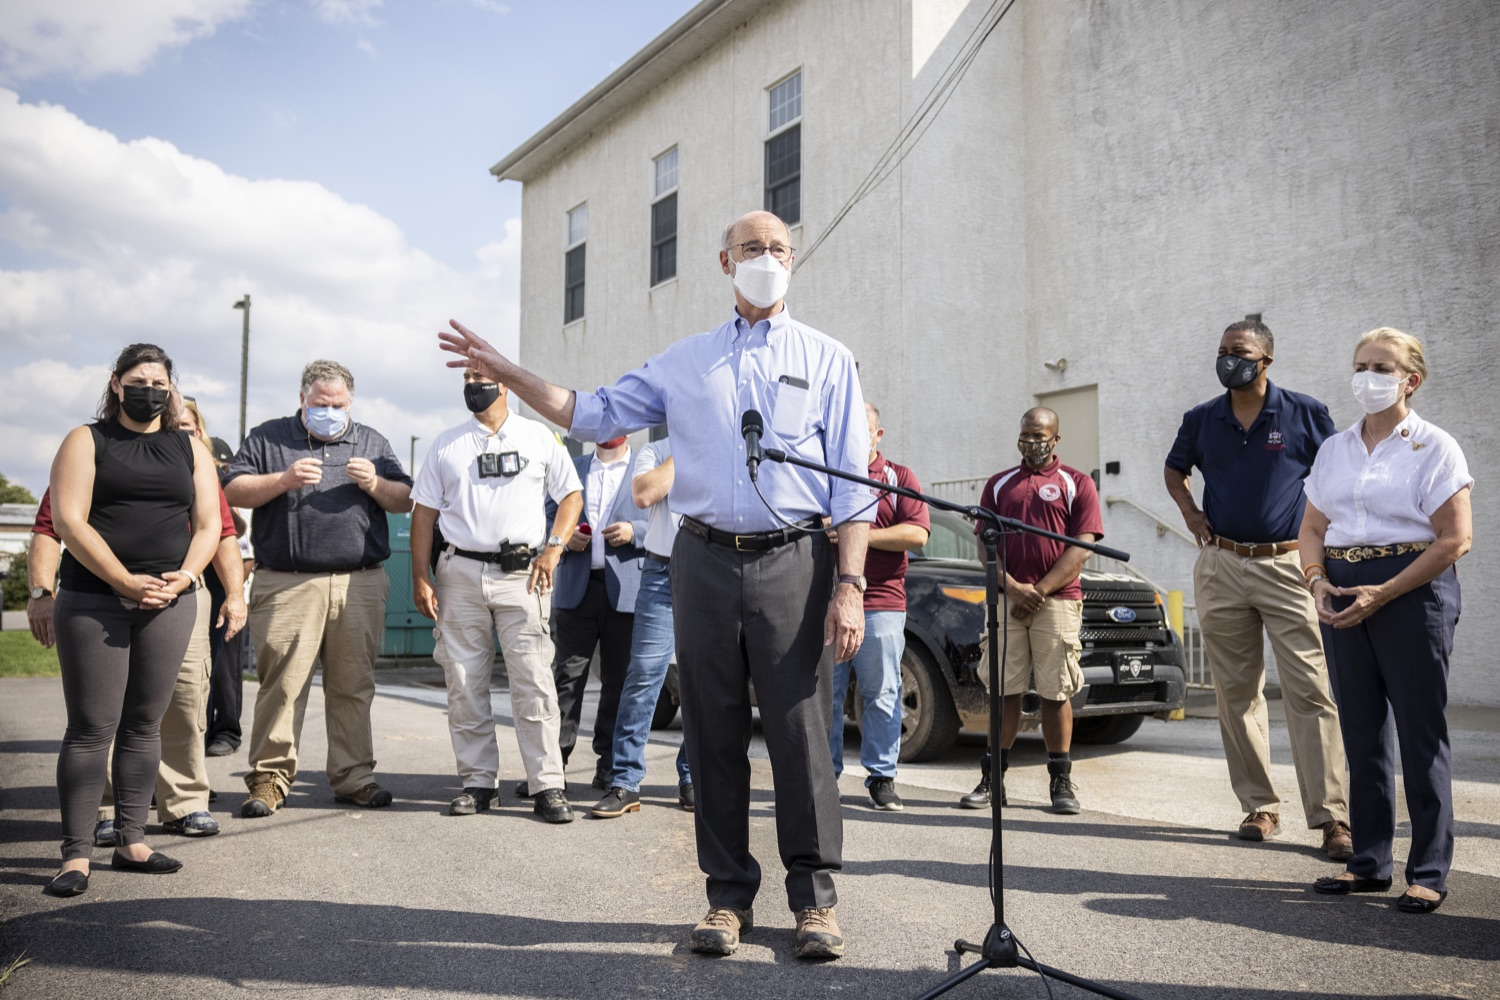 """<a href=""""https://filesource.wostreaming.net/commonwealthofpa/photo/19109_gov_stormDamage_dz_018.jpg"""" target=""""_blank"""">⇣Download Photo<br></a>Pennsylvania Governor Tom Wolf speaking with the press.   Governor Wolf visited the Borough of Bridgeport to tour some of the areas affected by the remnants of Ida. The governor, joined by local officials, viewed and discussed the impact to damaged areas, including businesses, homes and infrastructure. Bridgeport, PA - September 08, 2021"""